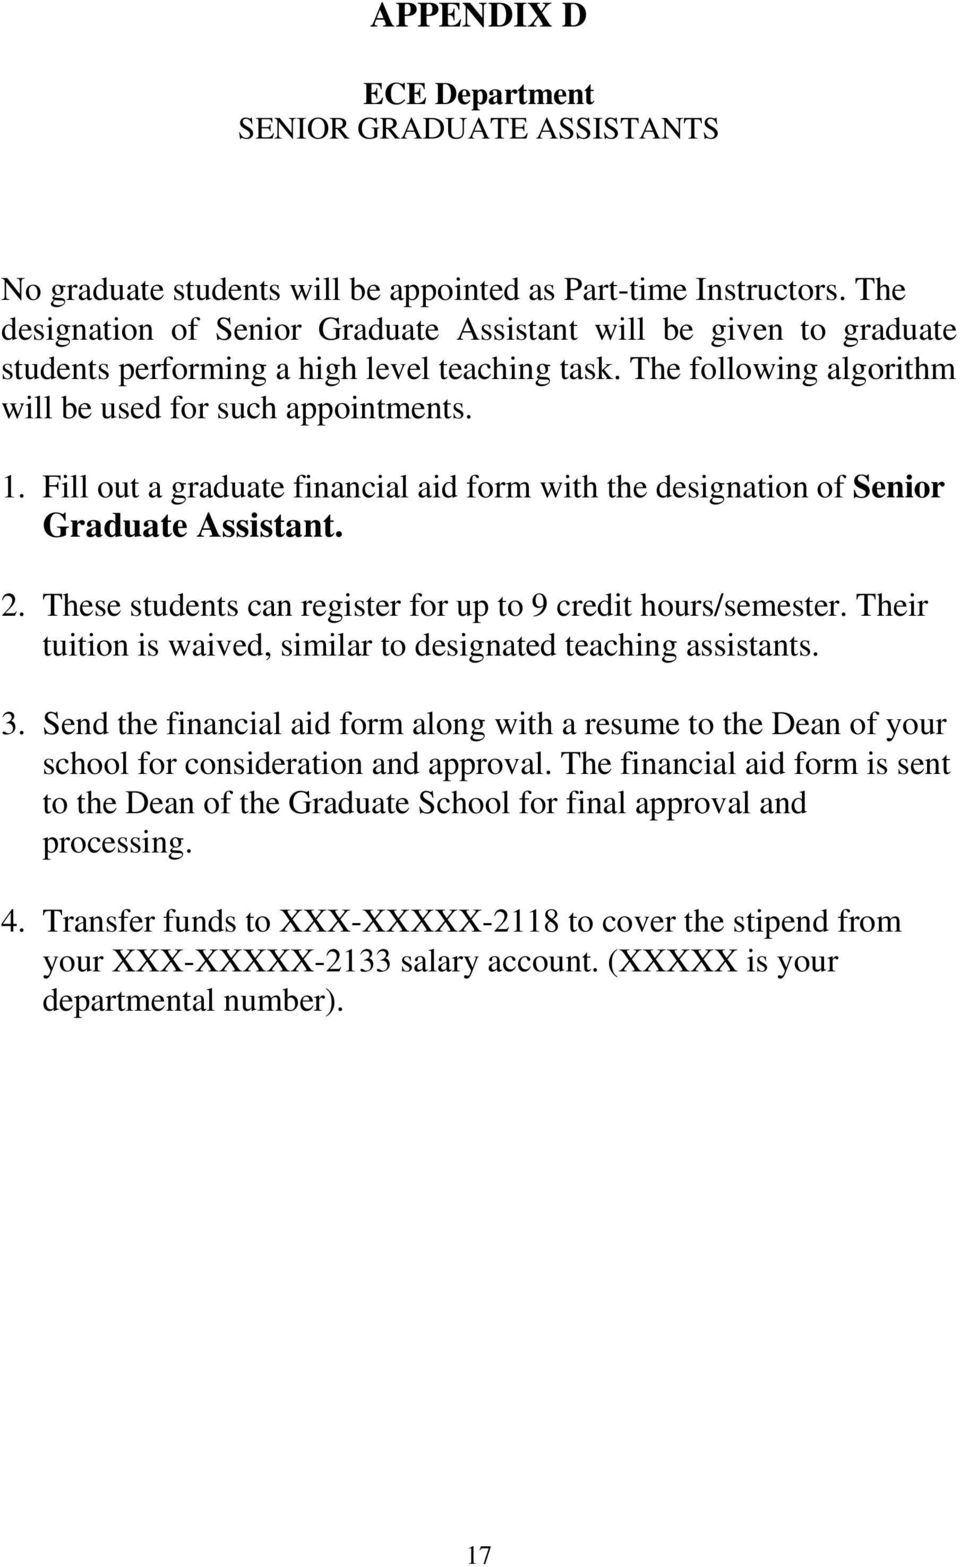 Fill out a graduate financial aid form with the designation of Senior Graduate Assistant. 2. These students can register for up to 9 credit hours/semester.